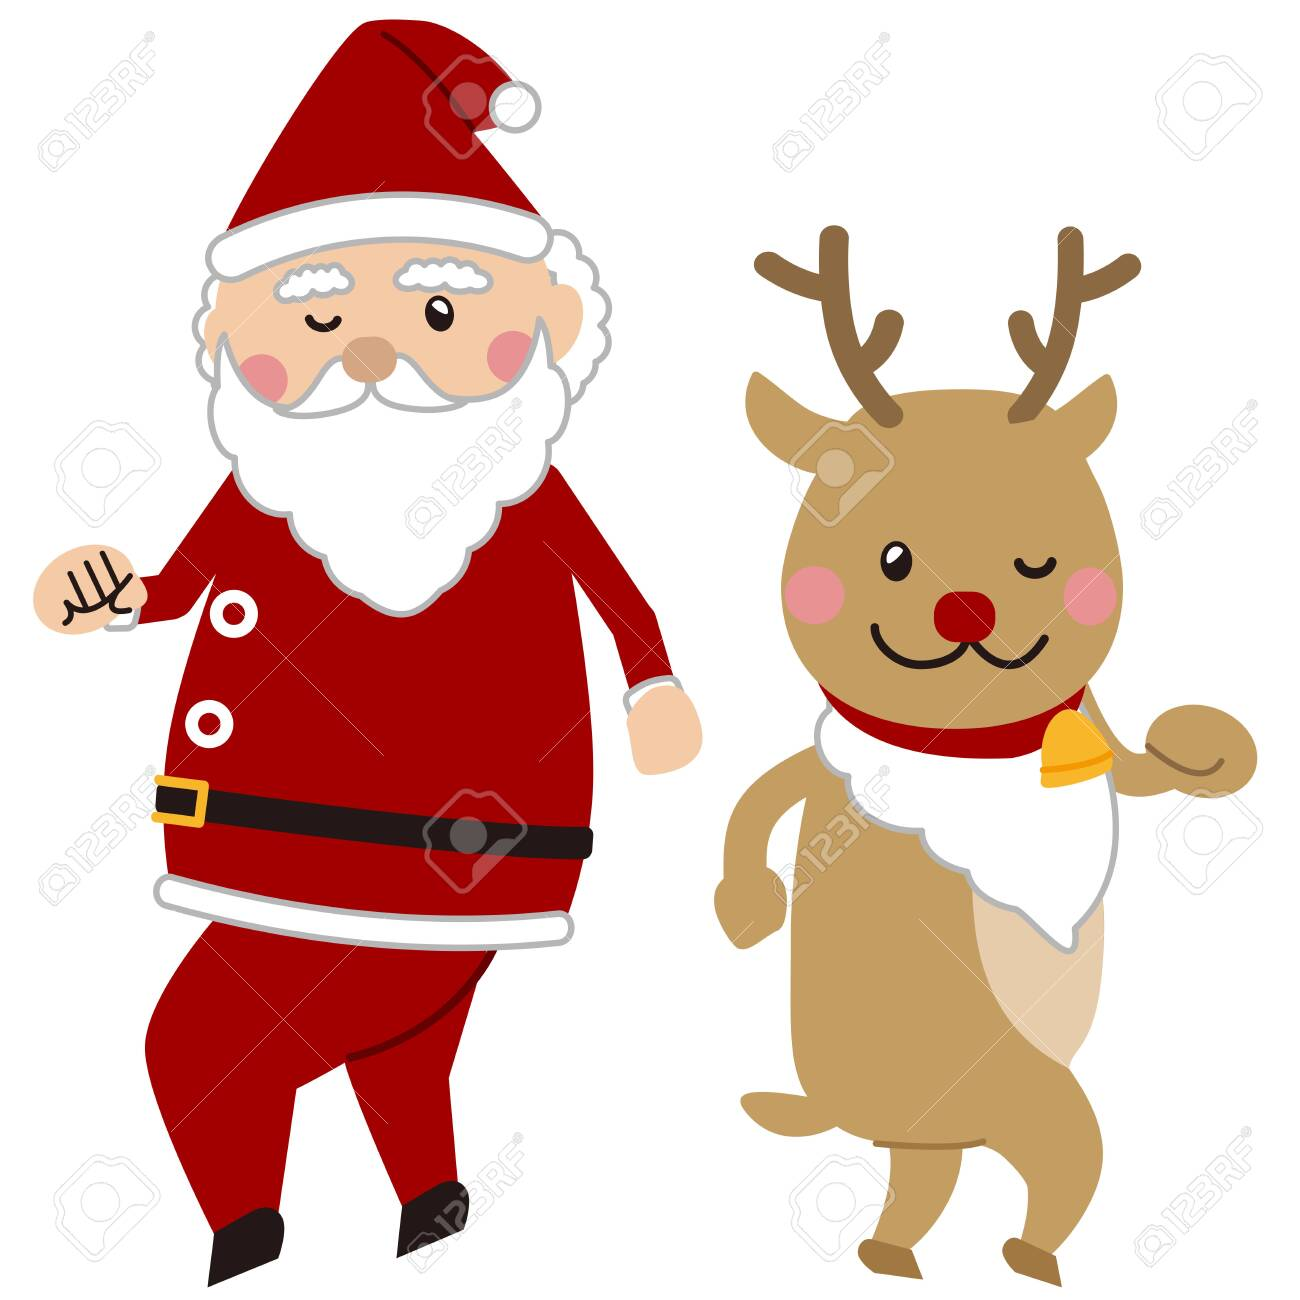 Dancing Santa Claus And Reindeer Royalty Free Cliparts Vectors And Stock Illustration Image 133866819